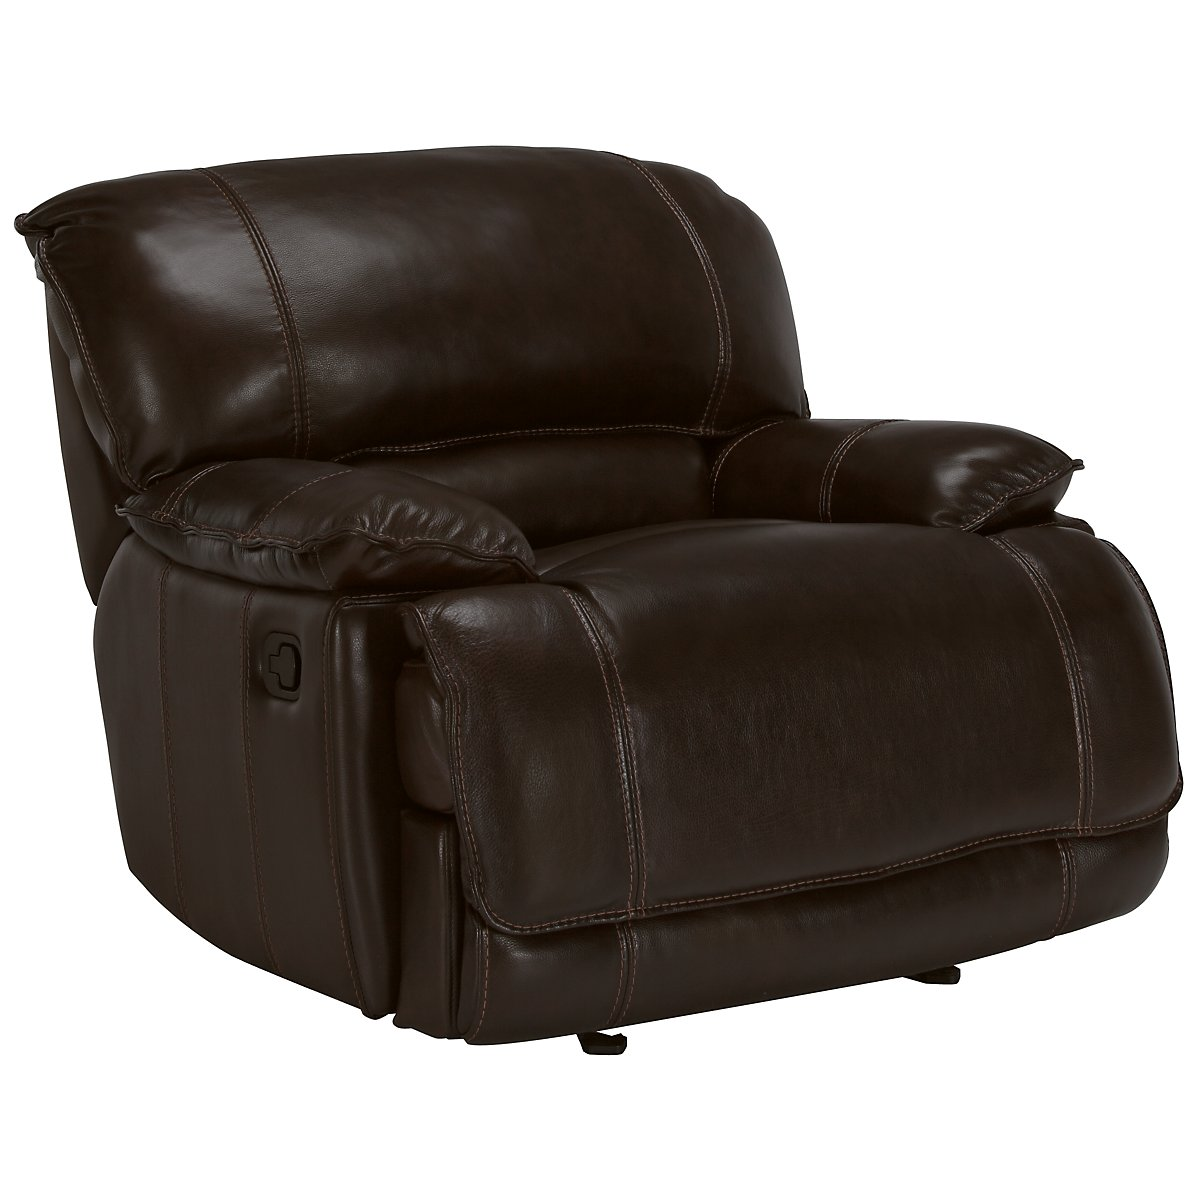 Benson Dark Brown Leather & Vinyl Glider Recliner